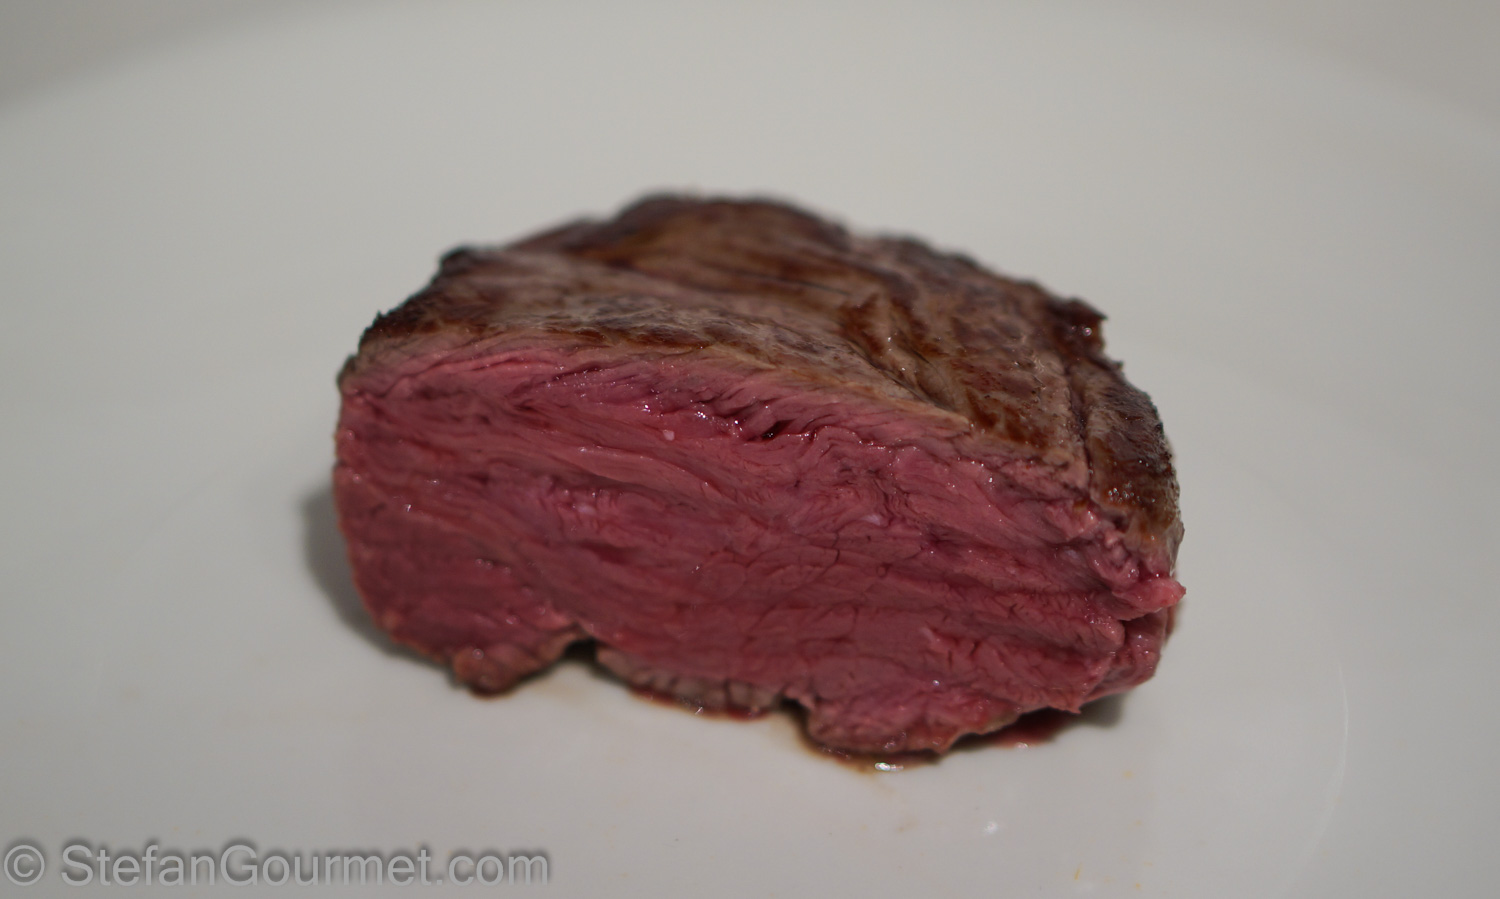 ... tenderloin tips into a prized tournedos!Or to prepare a wonderful Rosa